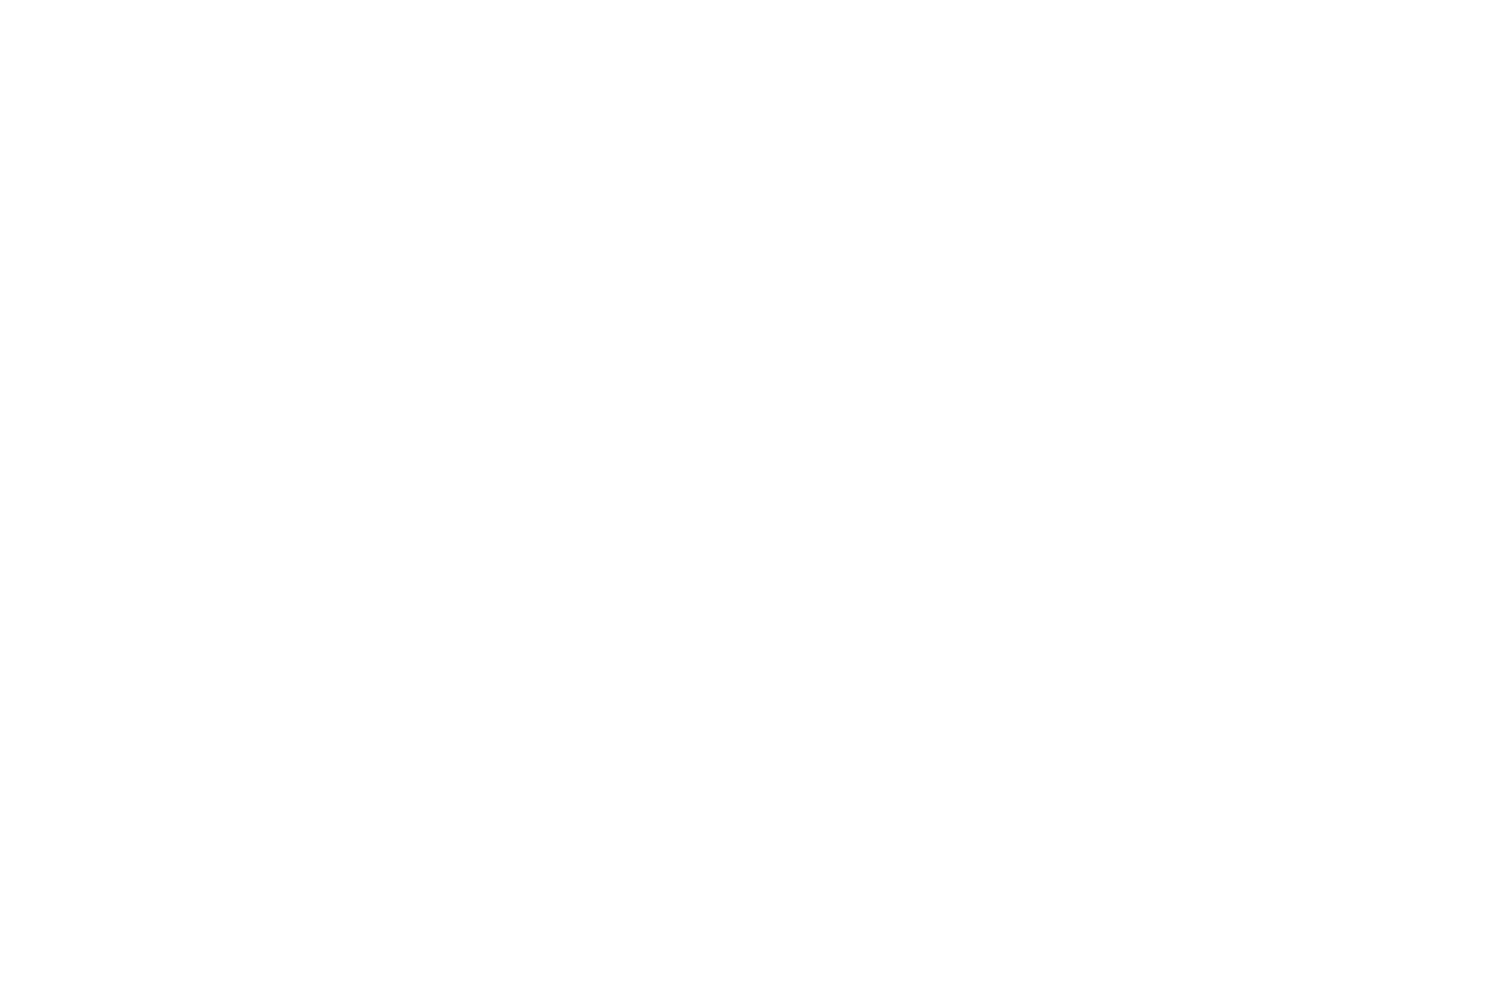 Admiral Ferries